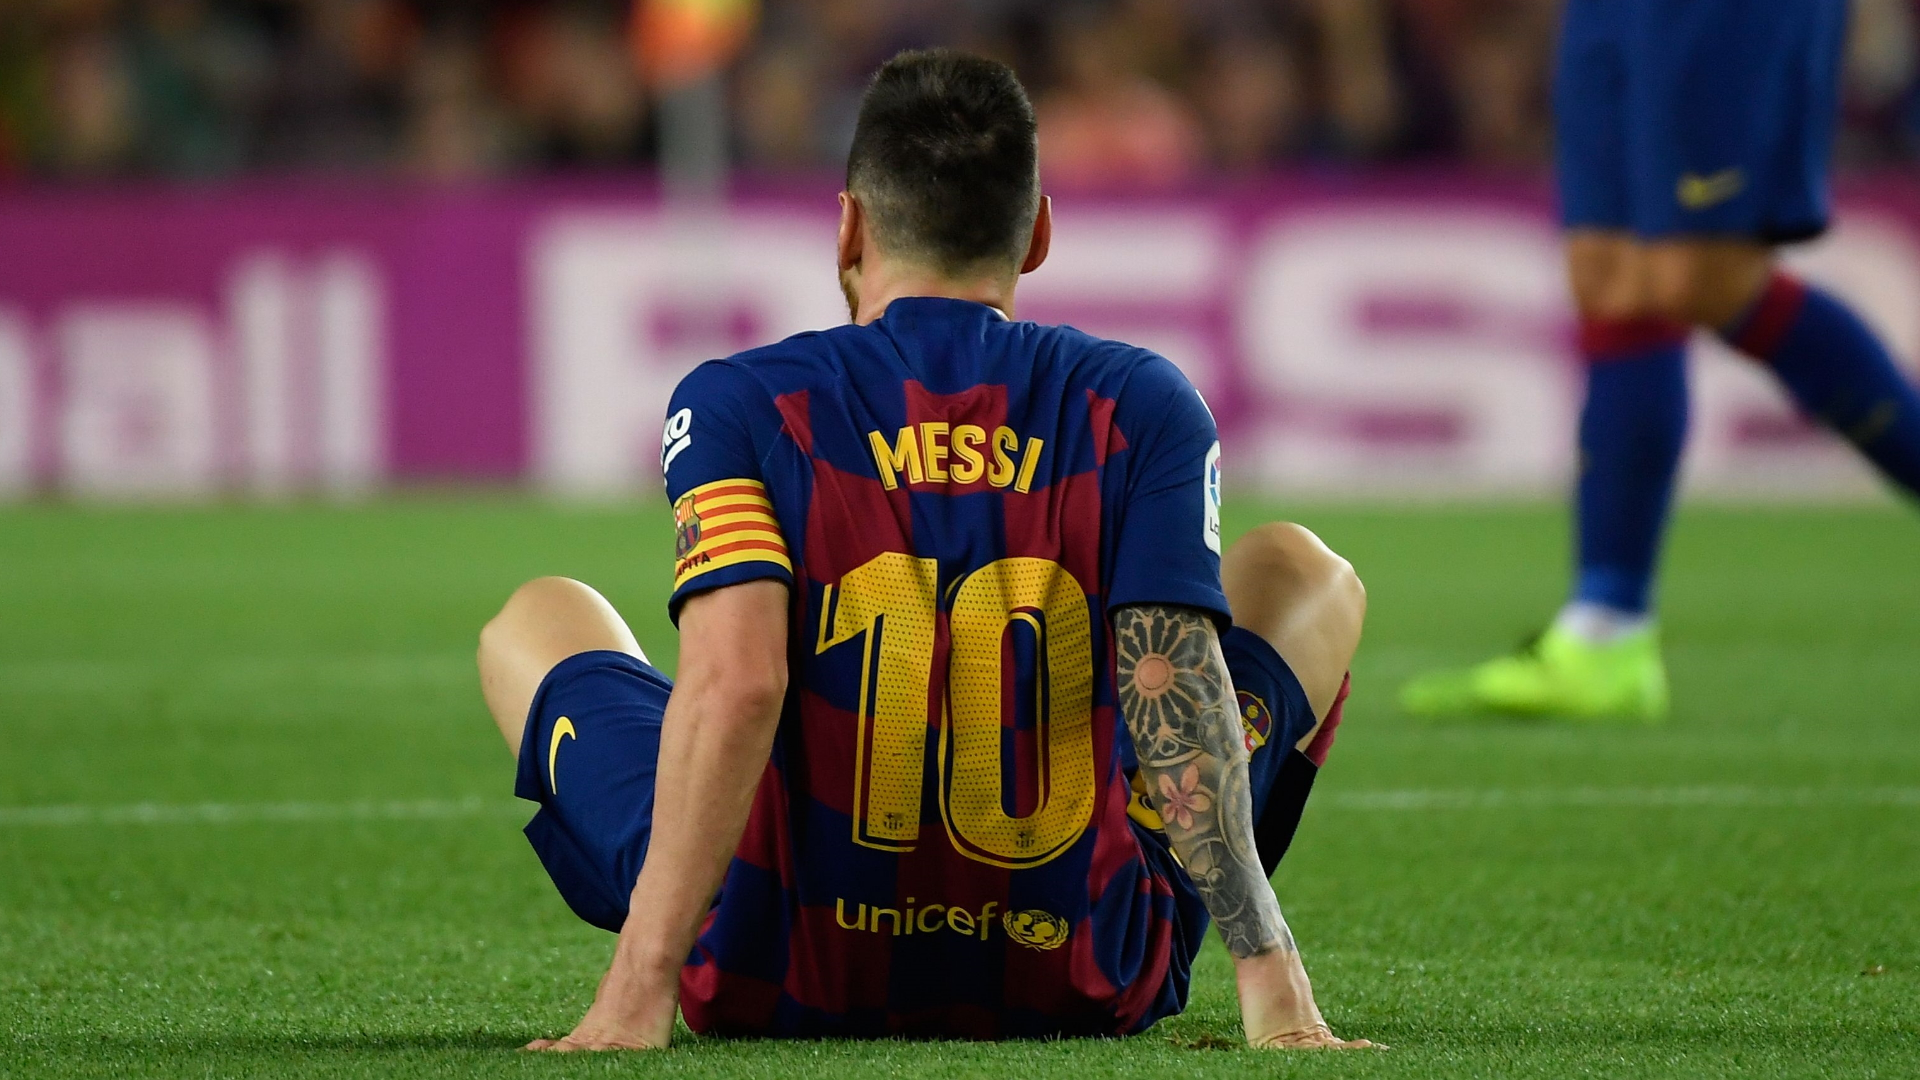 'Messi could leave Barcelona in the next couple of years' – Rivaldo says Argentine must feel 'important'